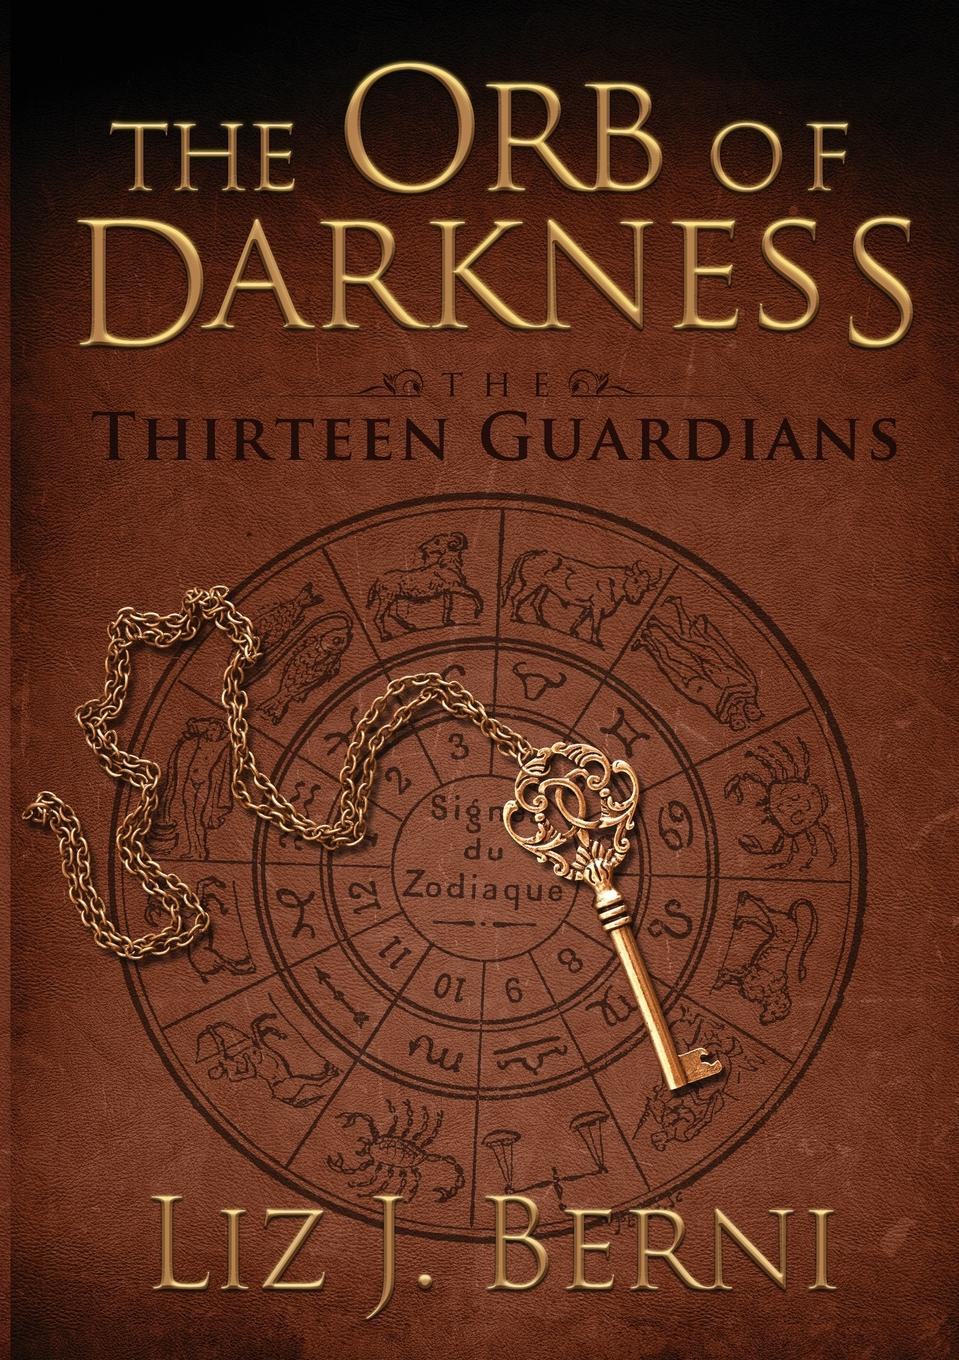 Liz J. Berni The Orb of Darkness the Thirteen Guardians